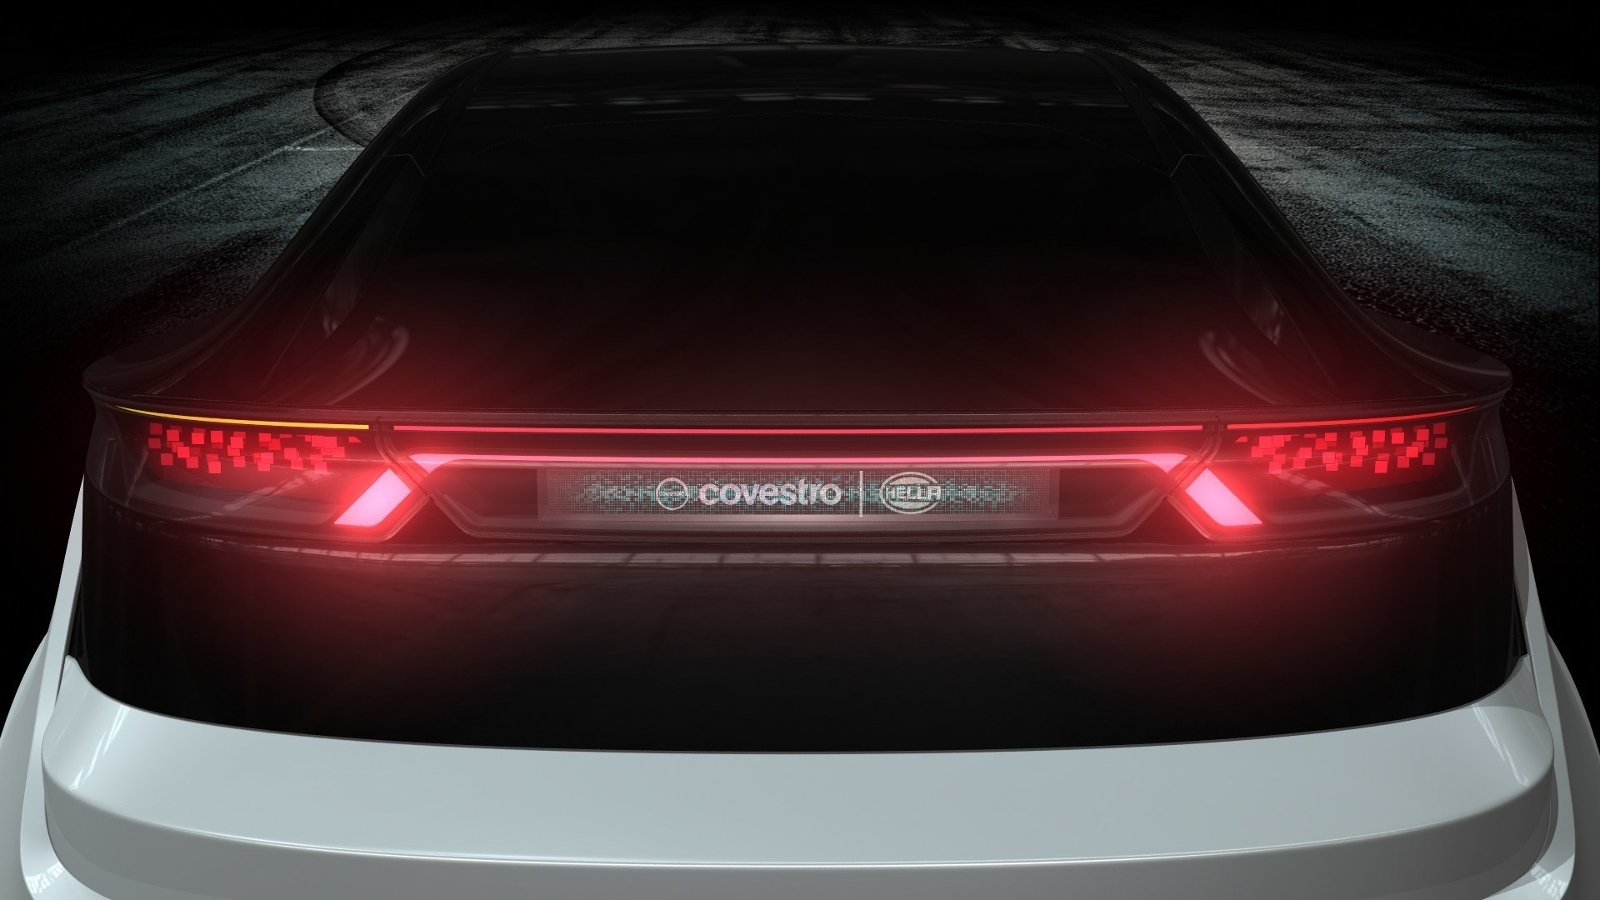 HELLA Teams up with Covestro to Develop Holographic Vehicle Lighting